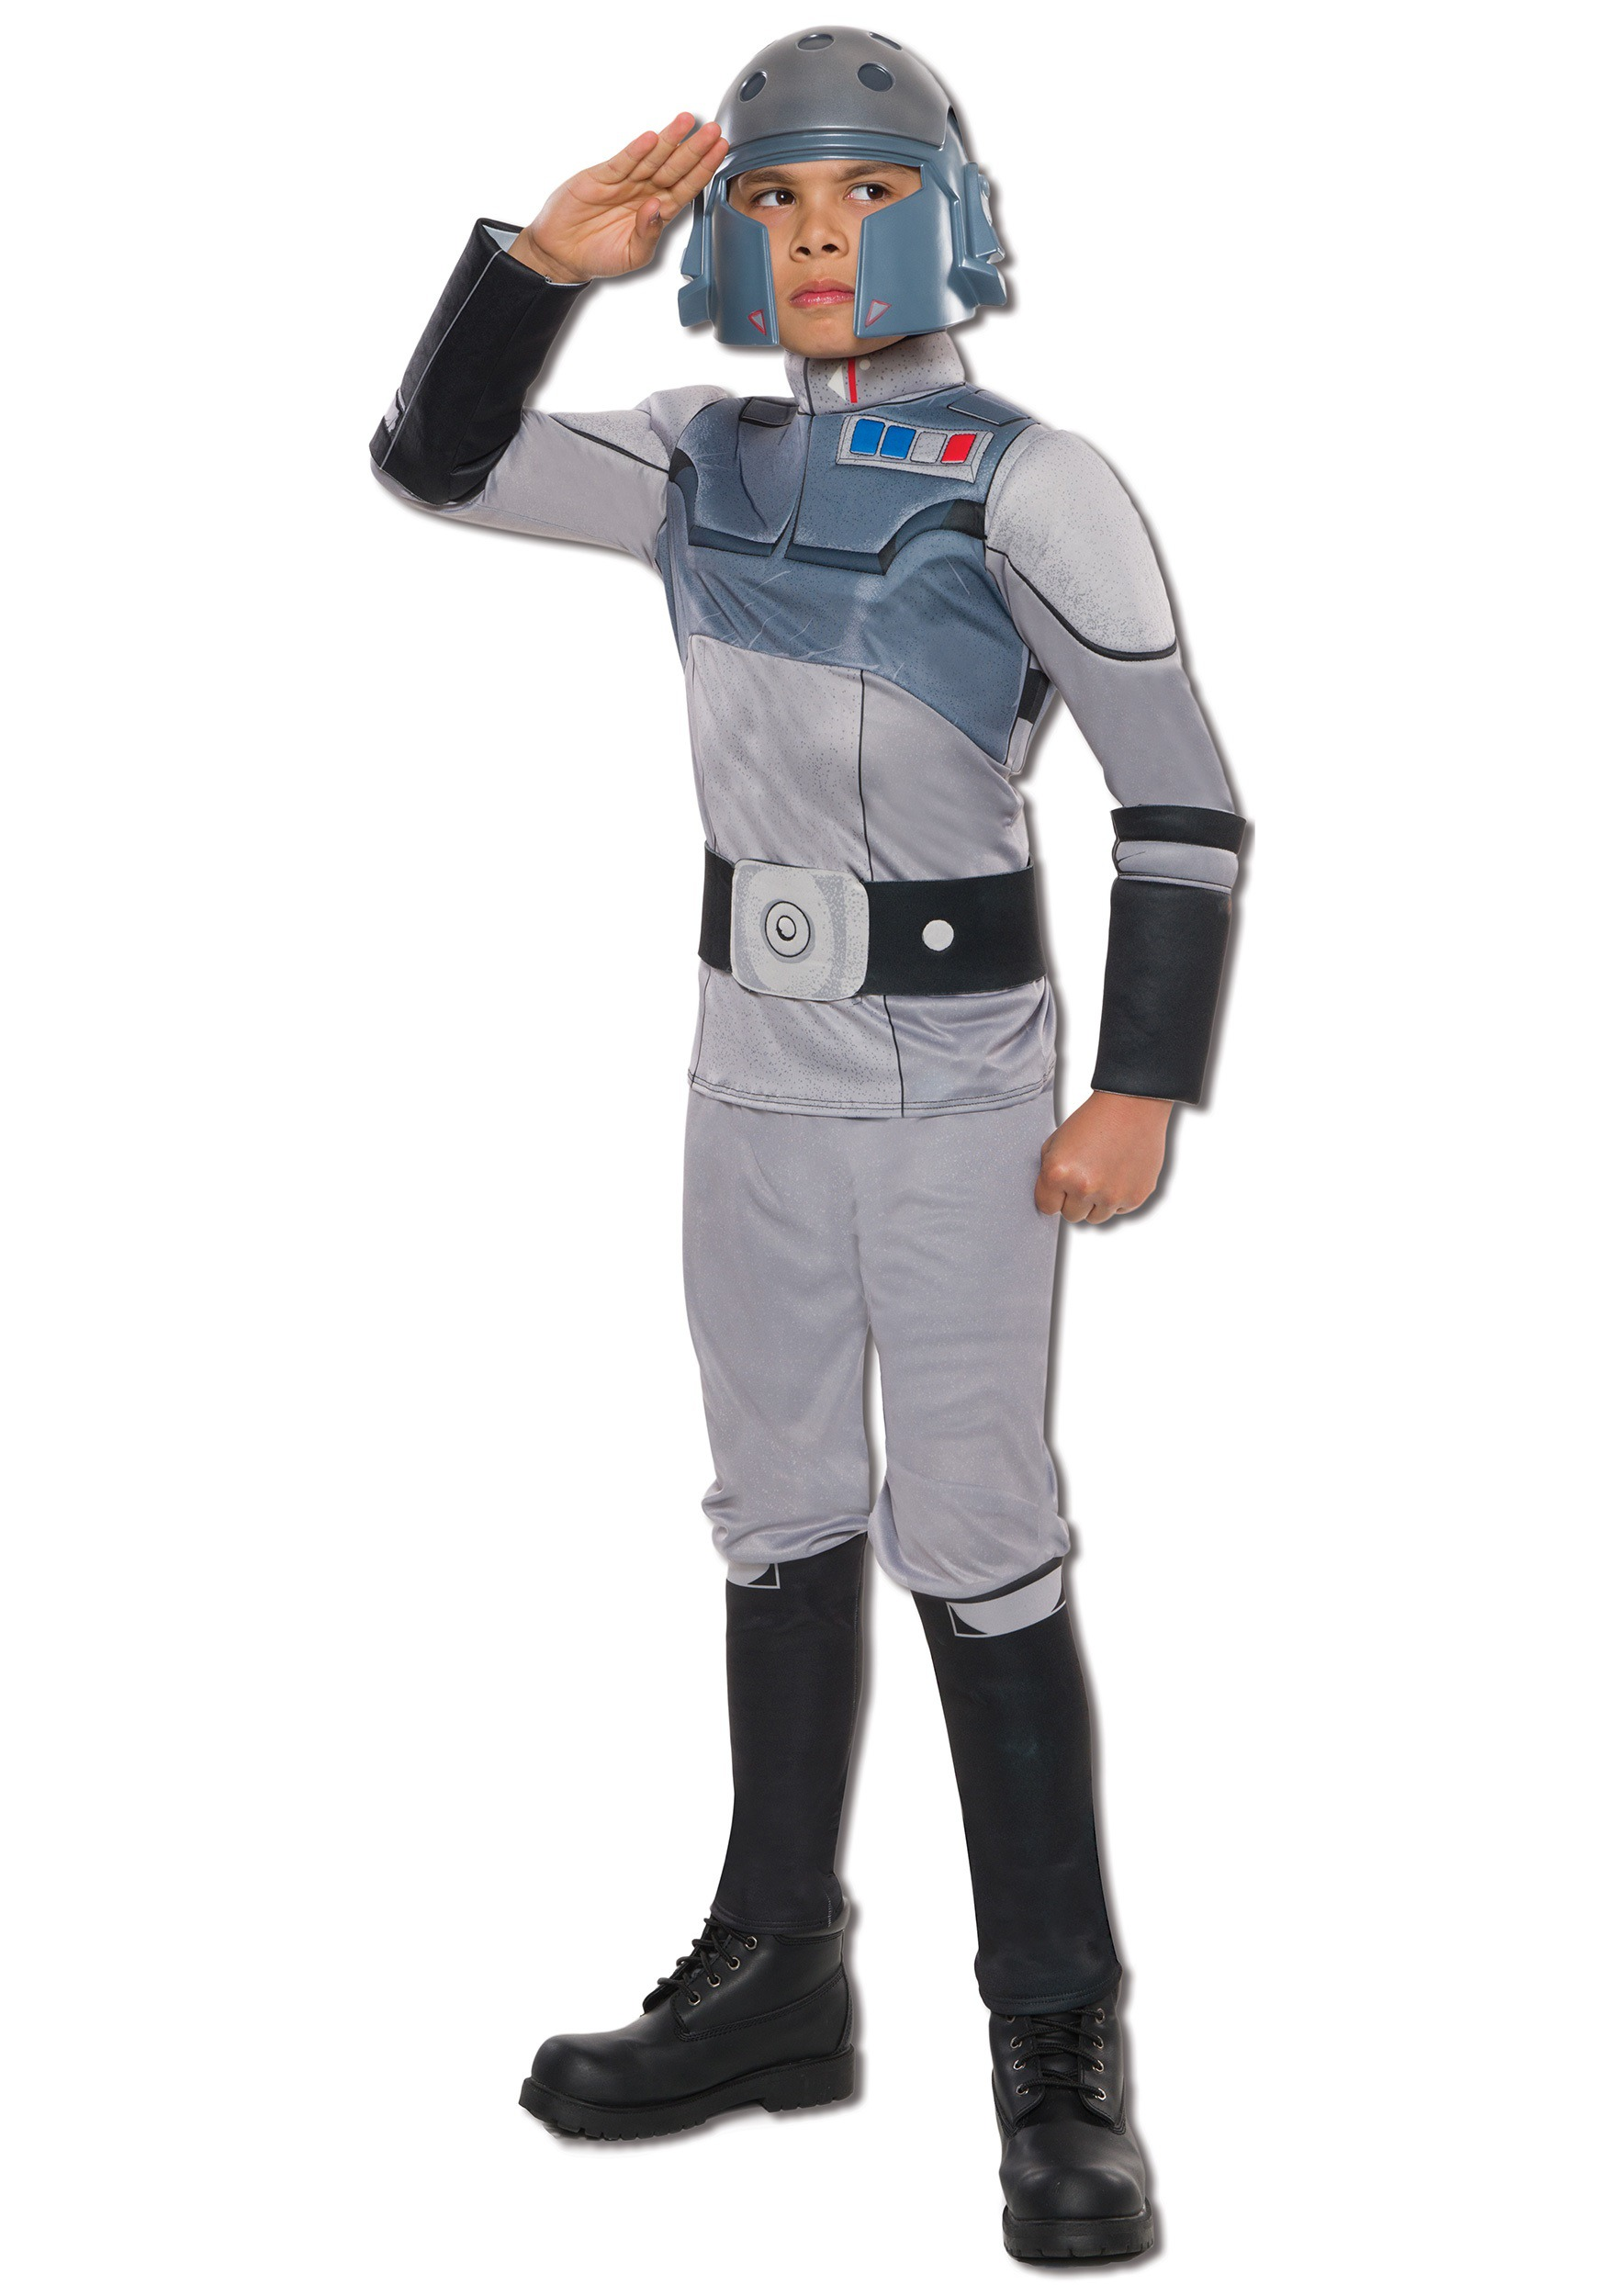 Kids Star Wars Rebels Deluxe Agent Kallus Costume RU610605